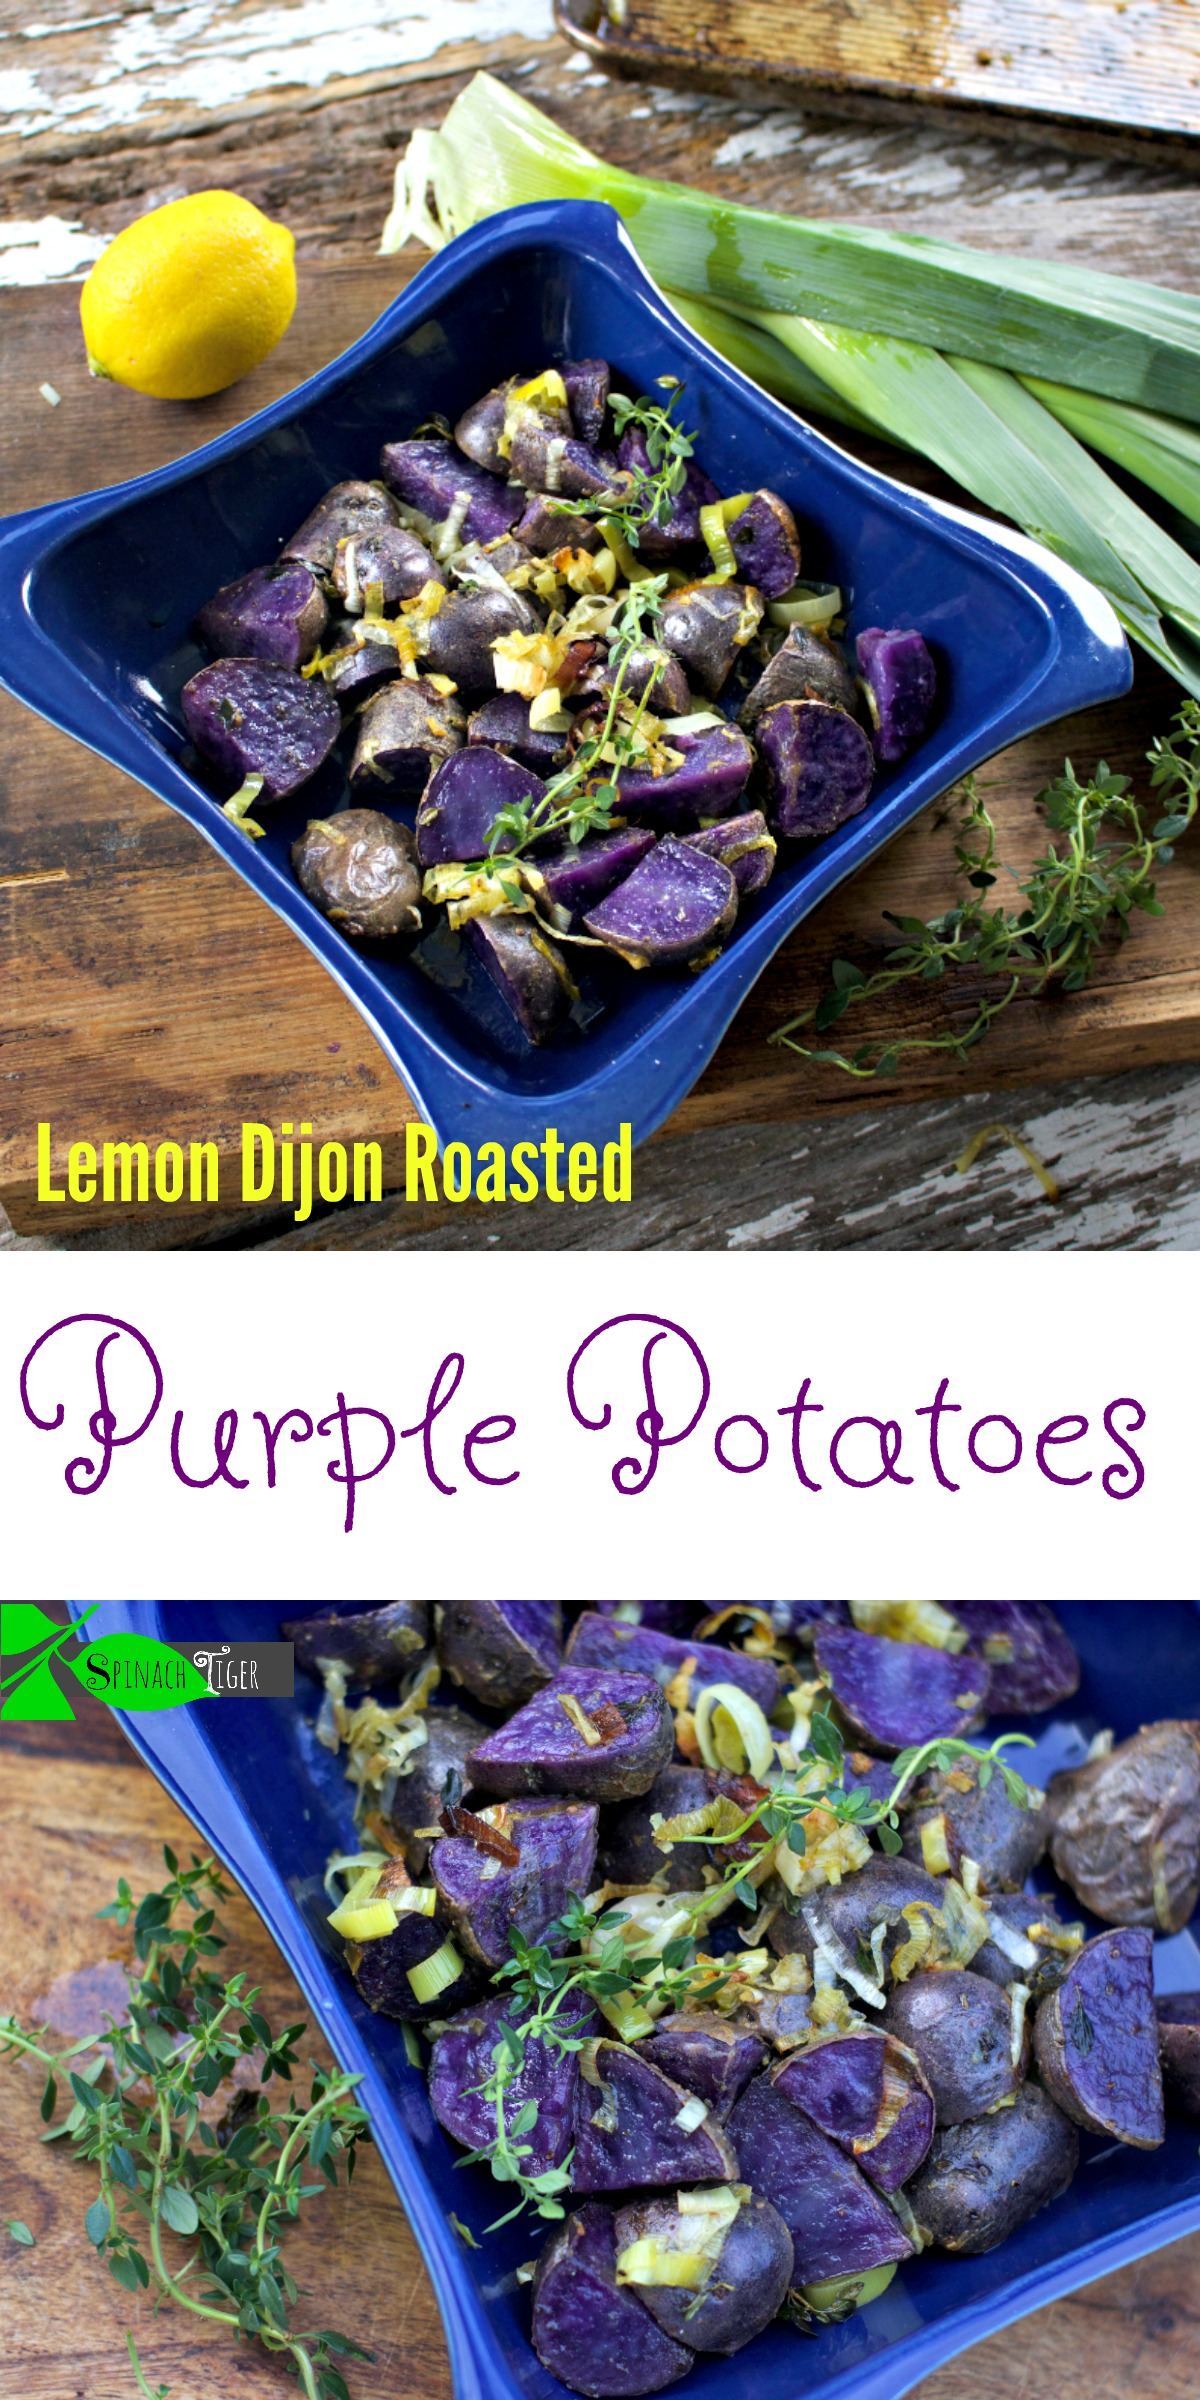 Lemon Dijon Roasted Purple Potatoes from Spinach Tiger